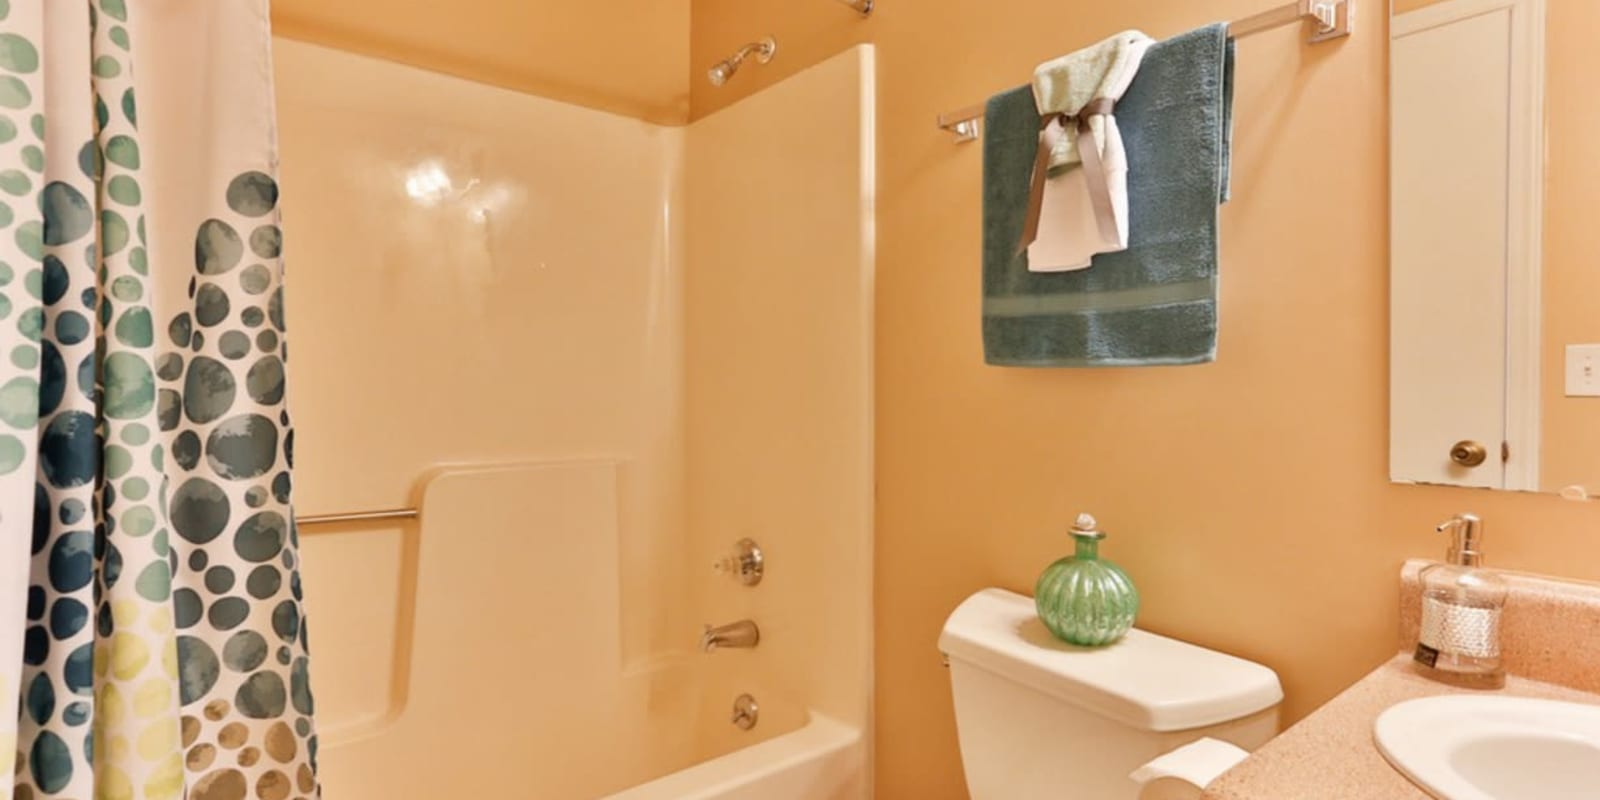 A bathroom with an oval tub at Huntersville Apartment Homes in Huntersville, North Carolina